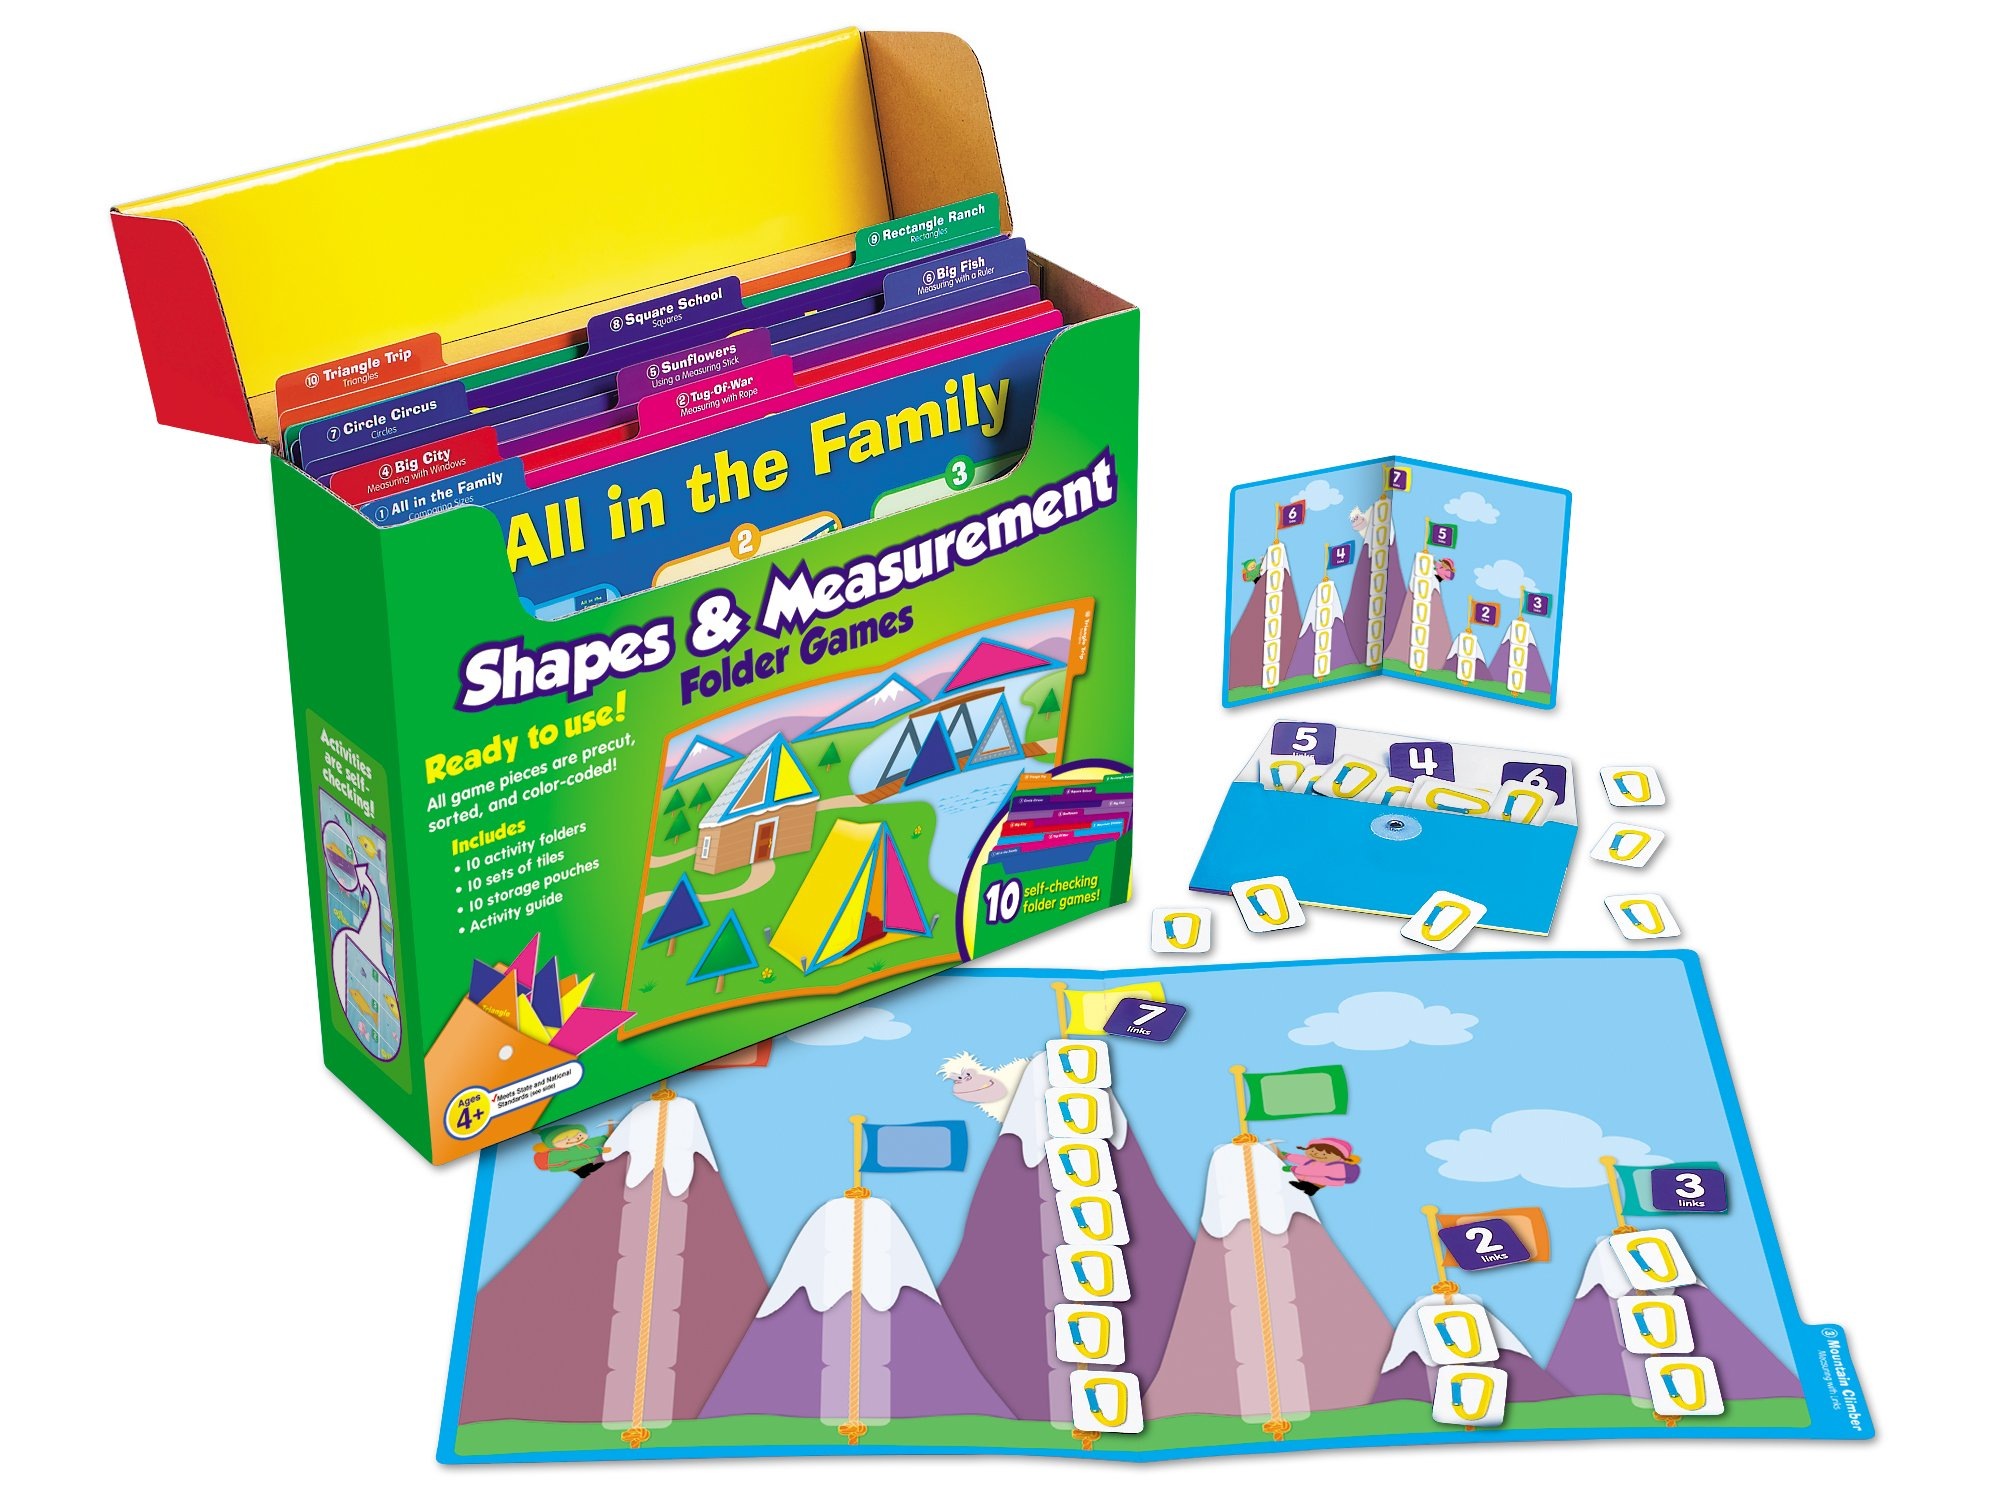 Lakeshore Early Math File Folder Game Libraries - Pre K-K - Complete Set by Lakeshore Learning Materials (Image #5)